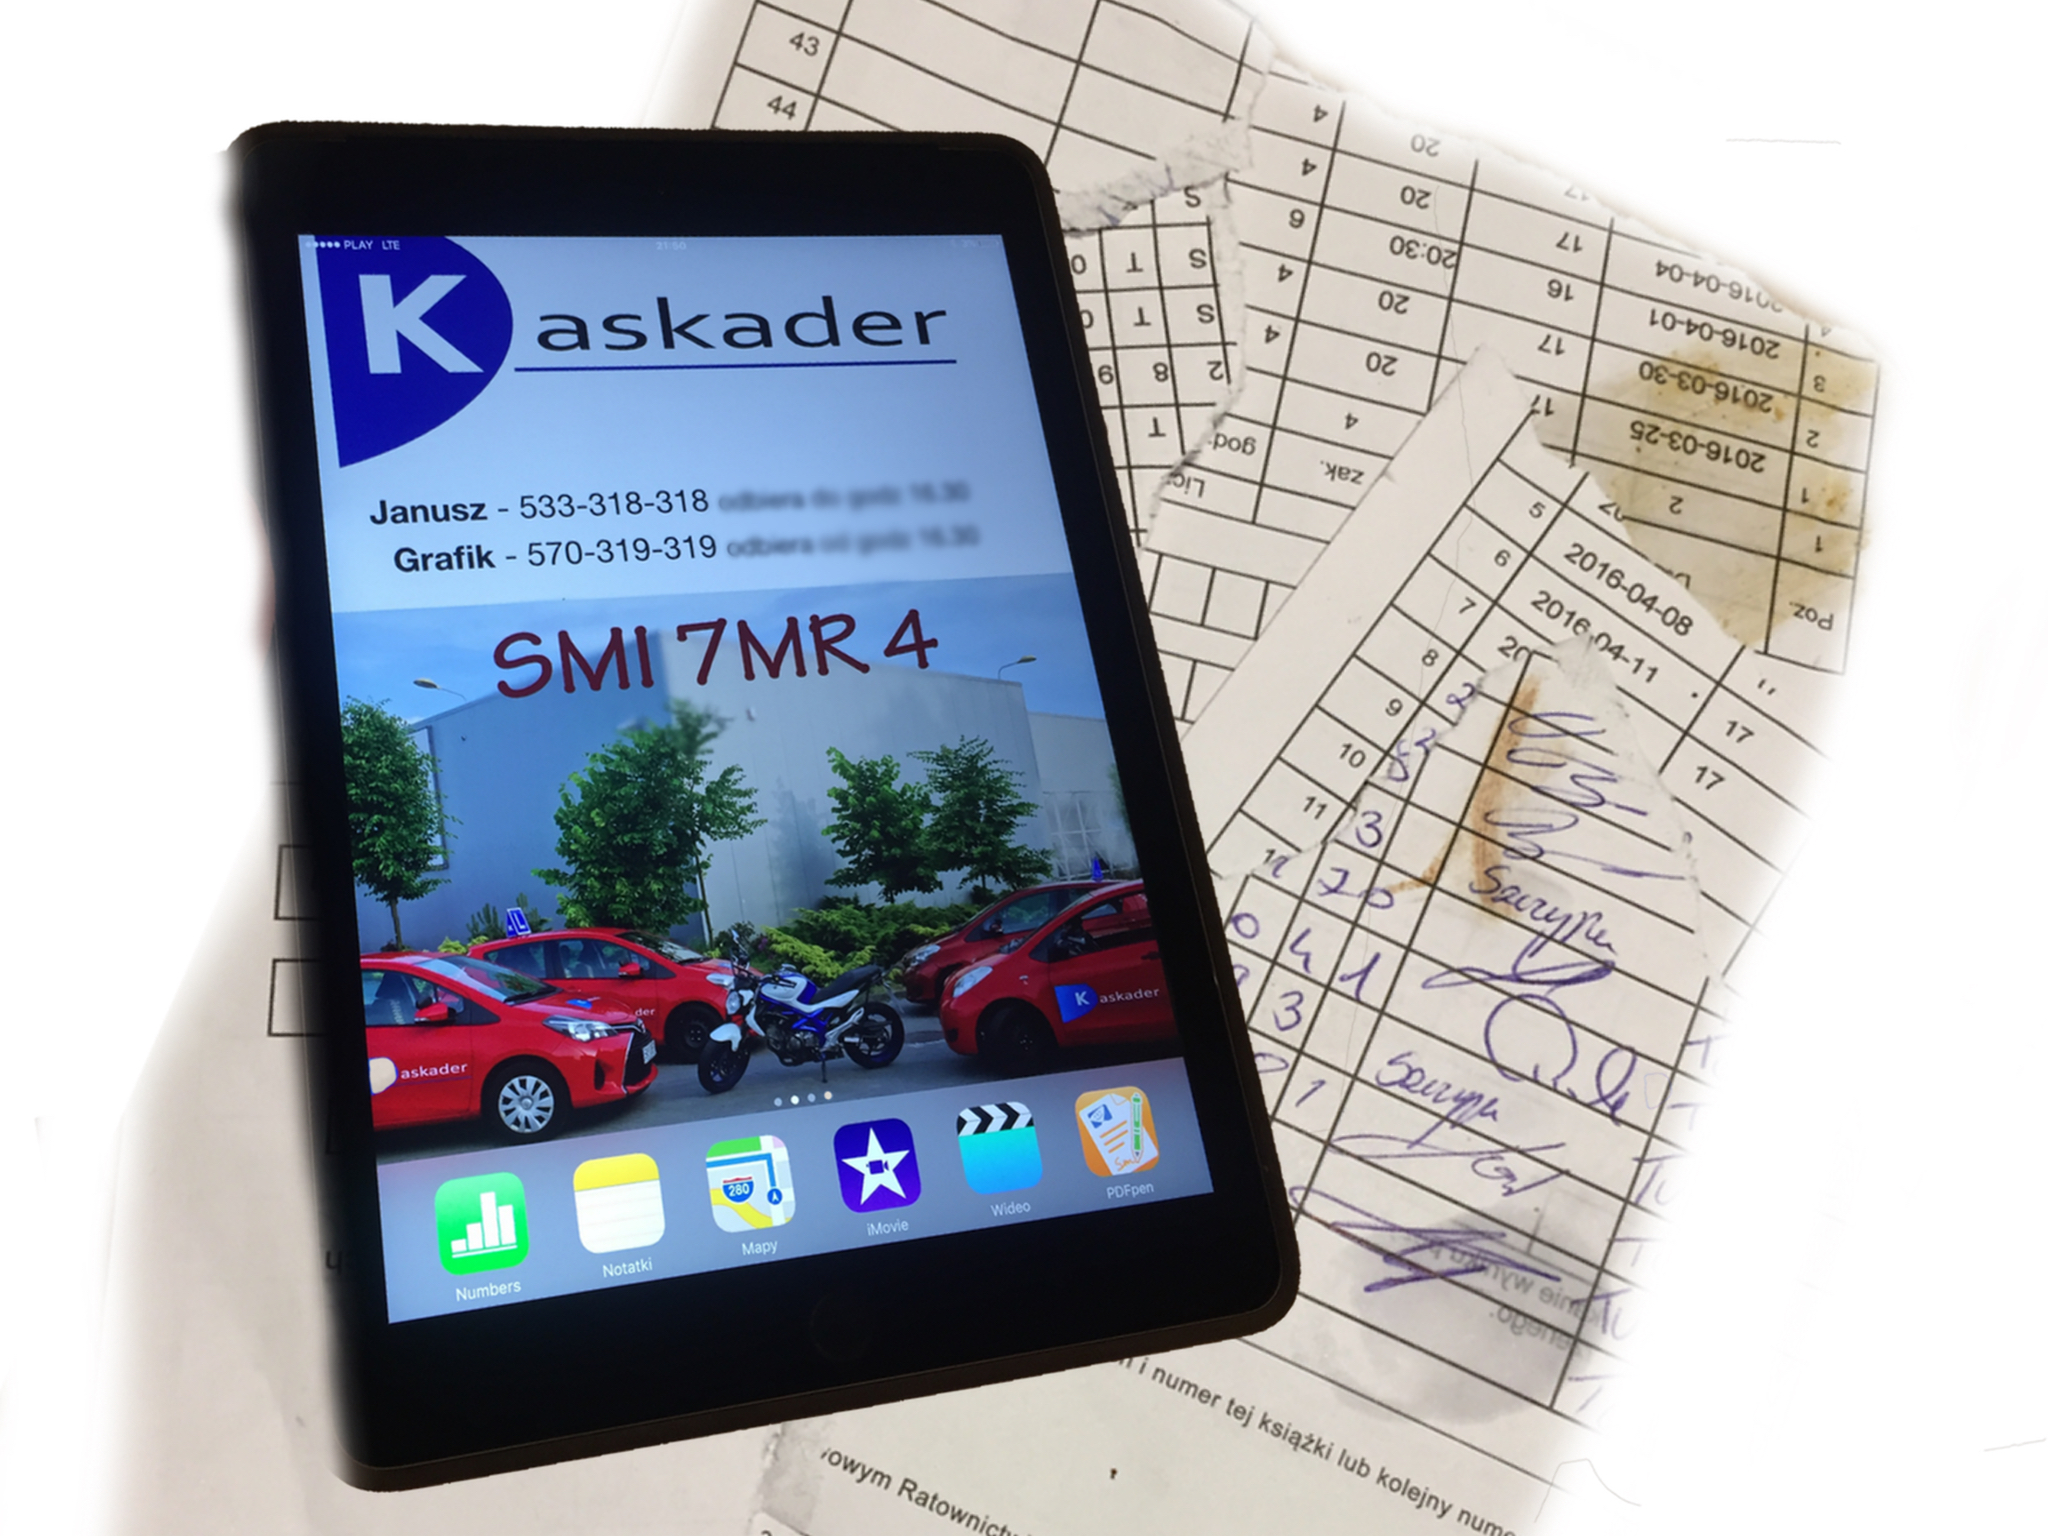 kaskader tablet